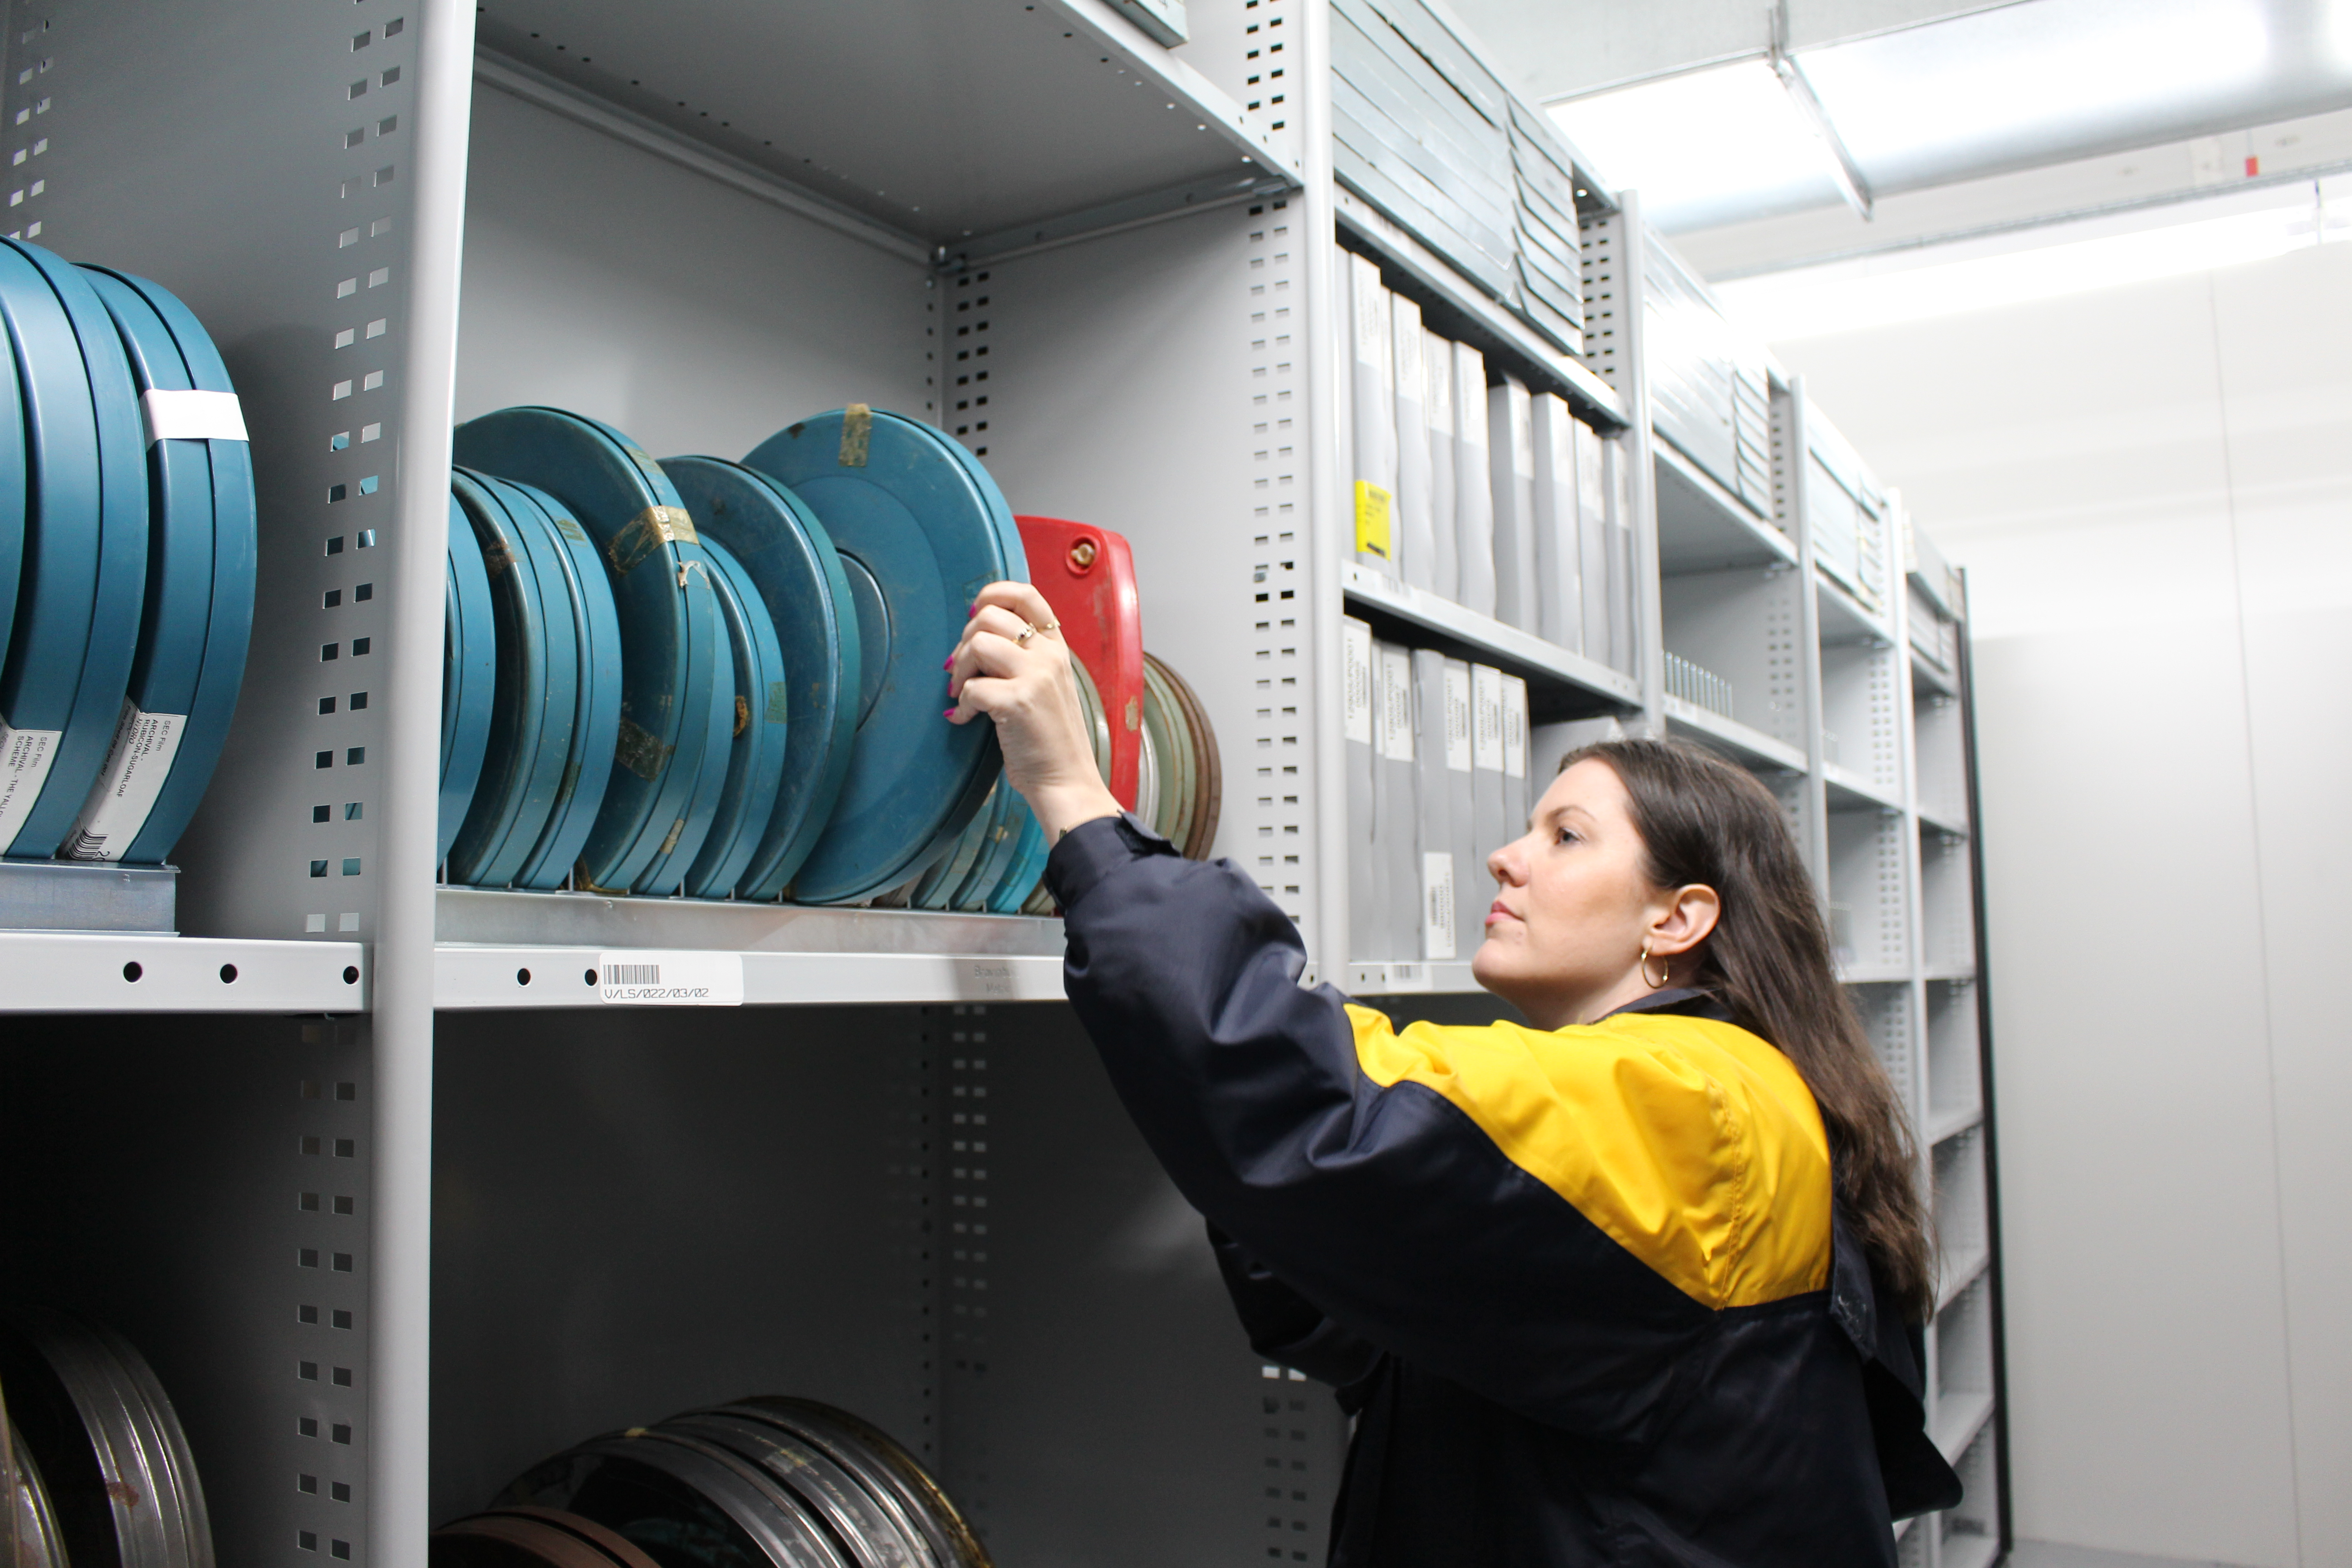 photo of woman taking a film reel from a shelf